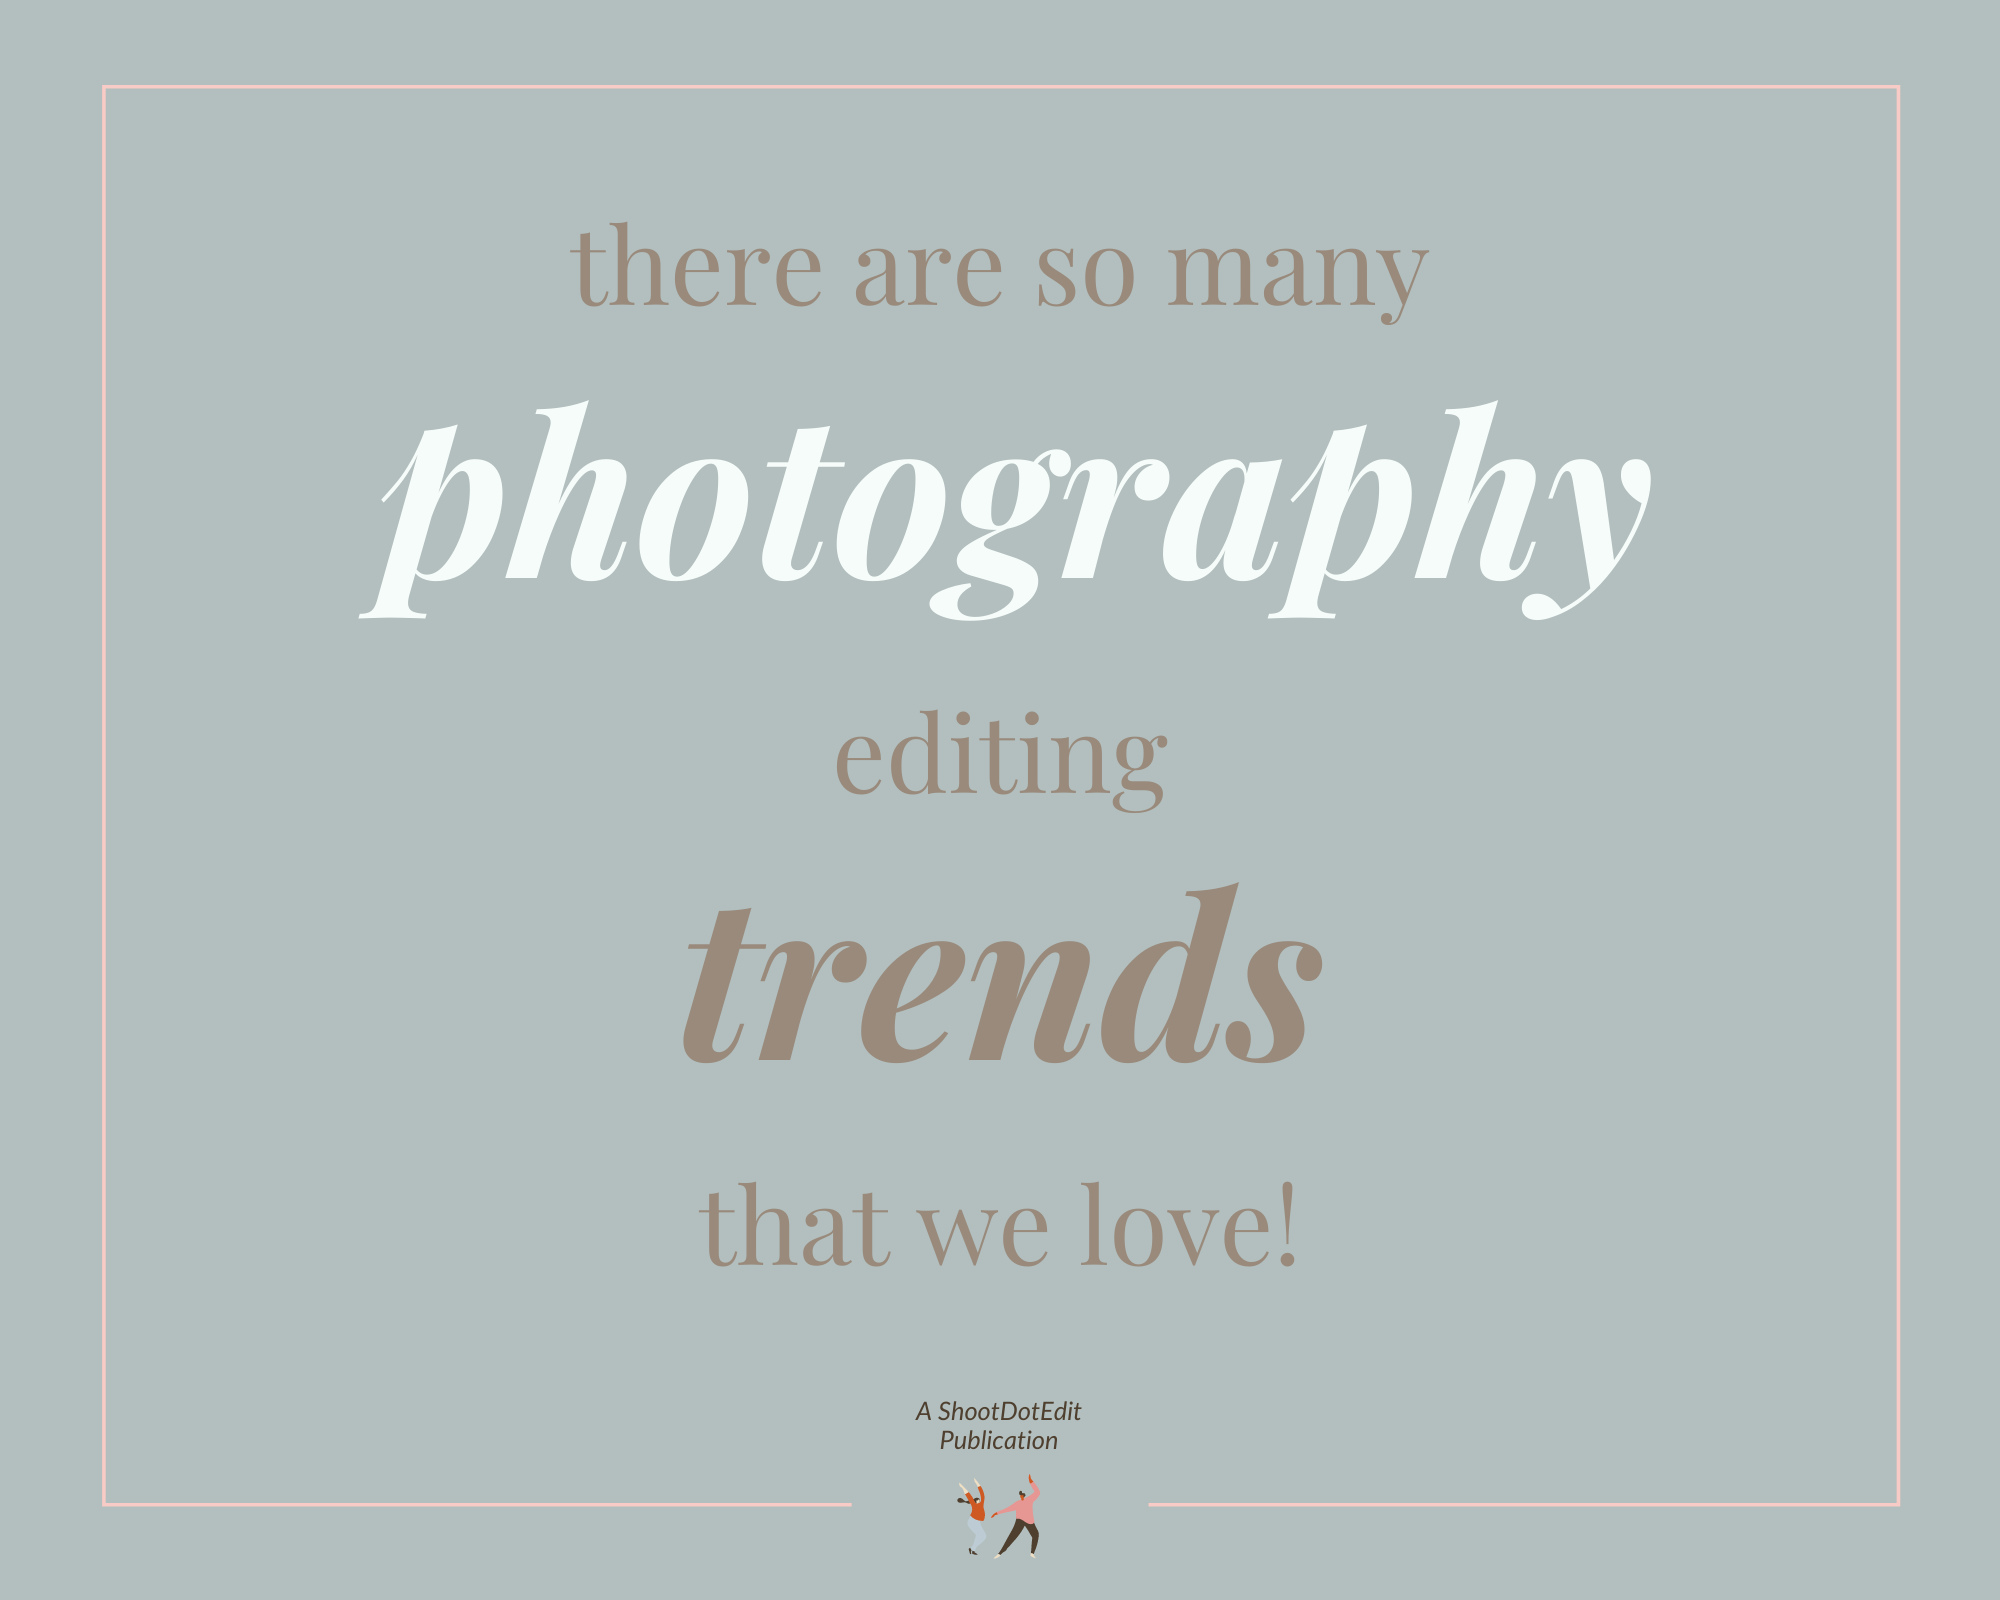 Infographic stating there are so many photography editing trends that we love